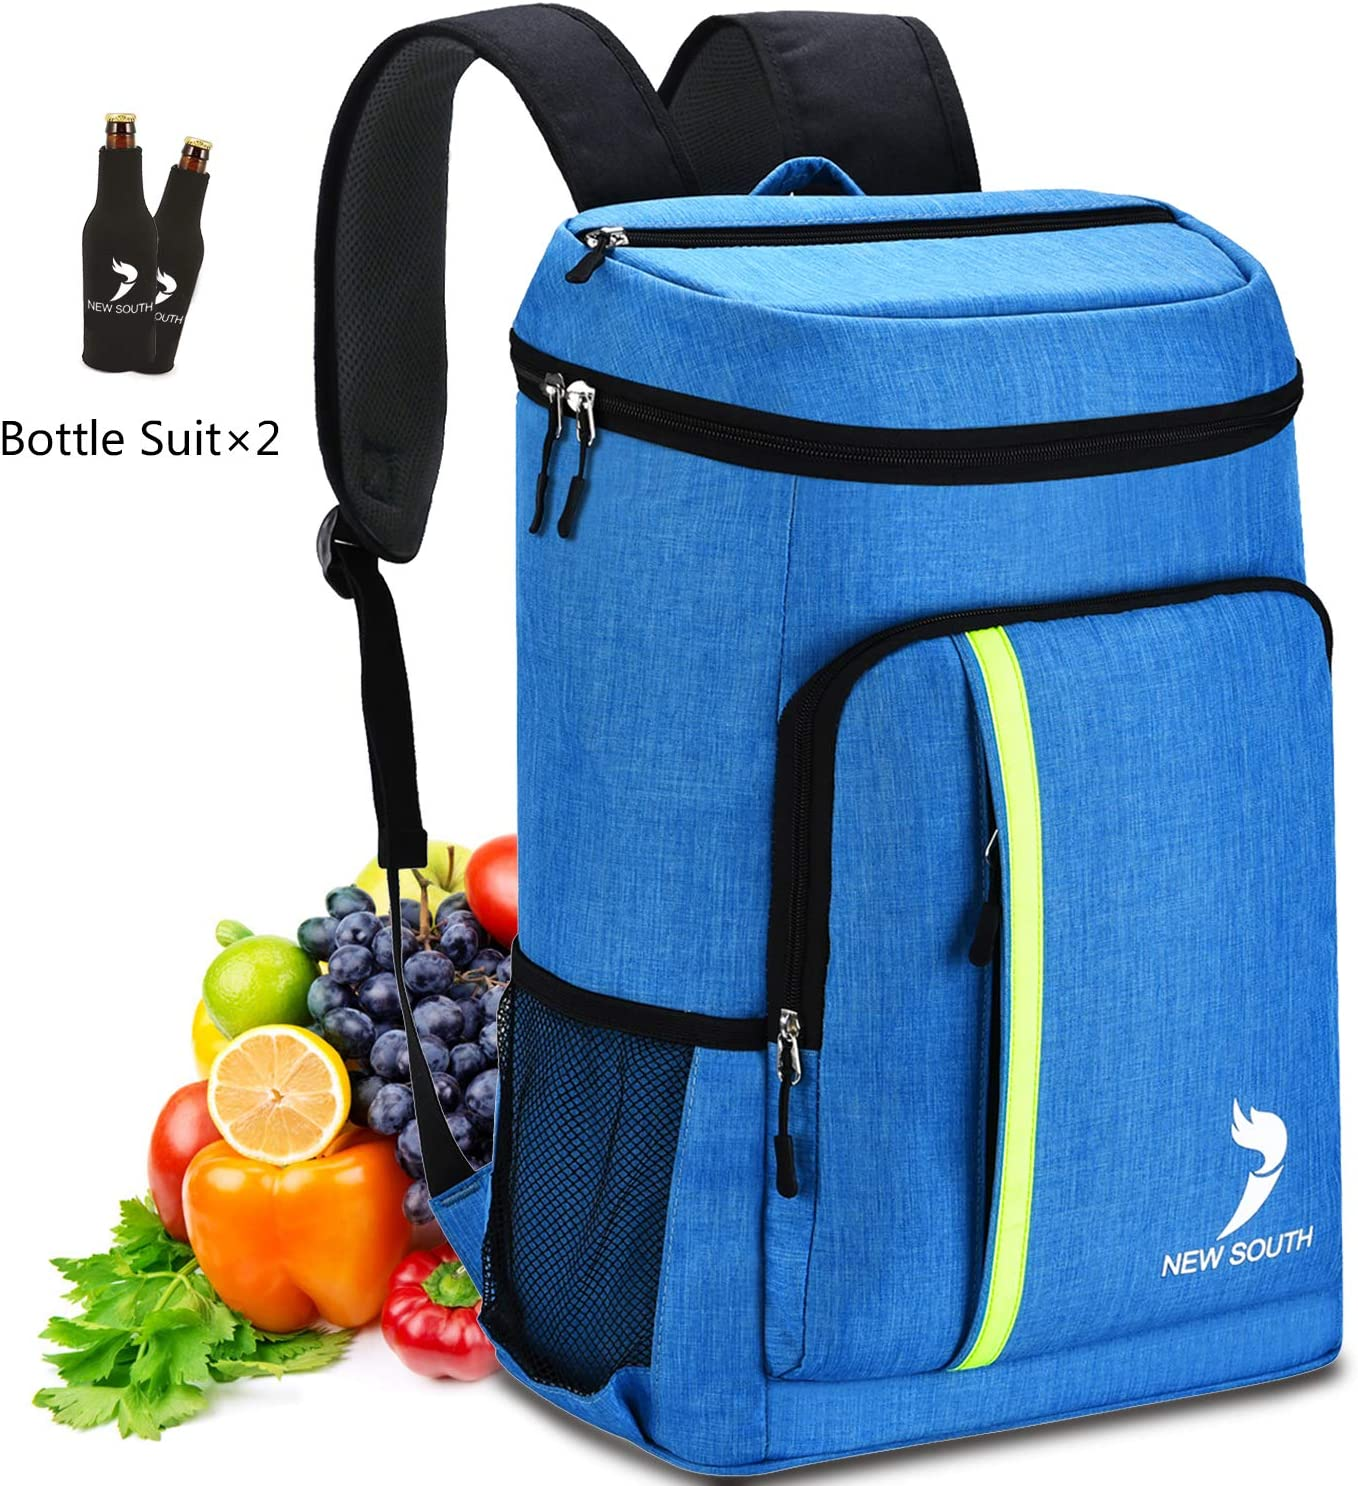 New-South Camping Backpack Cooler 30L,Blue